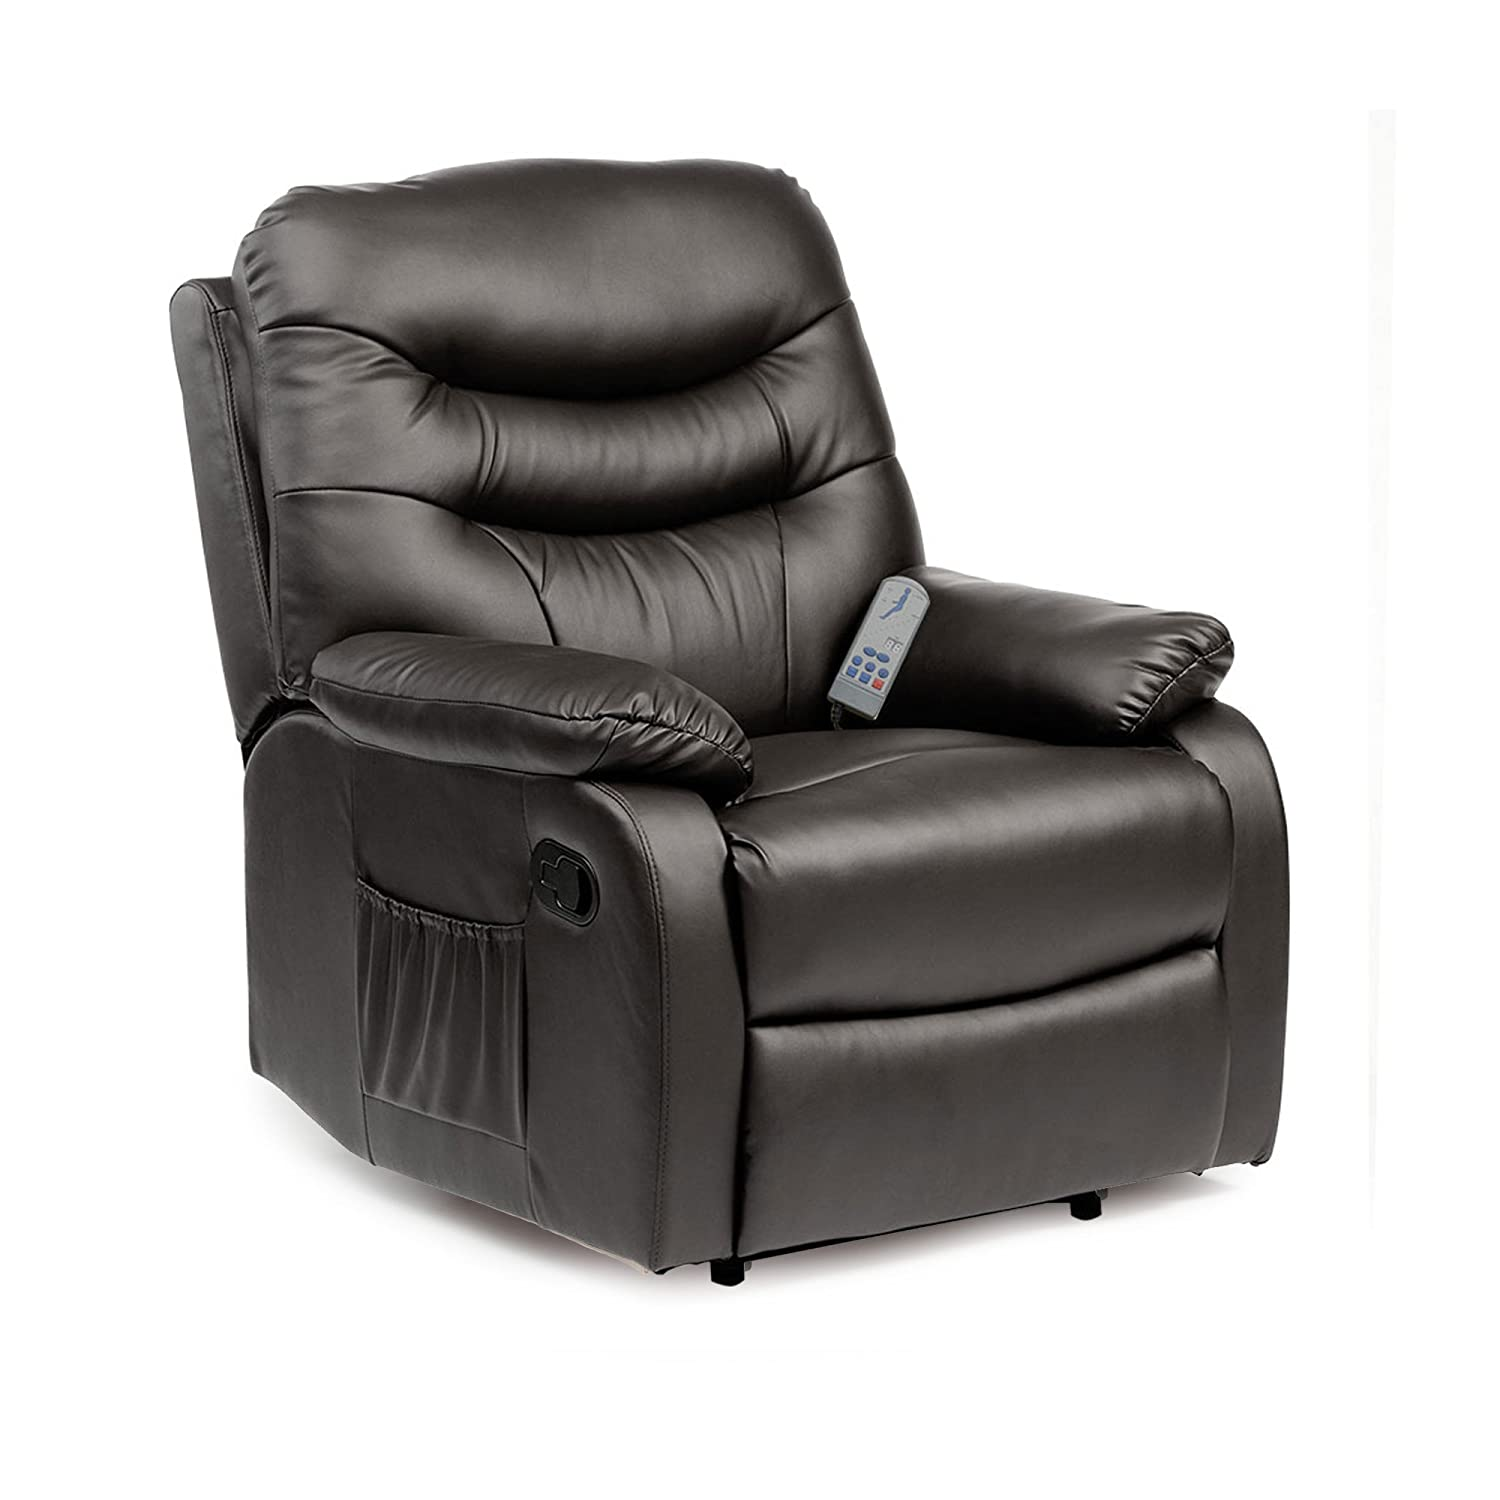 Hebden Massage Manual Reclining Chair (Black) Amazon.co.uk Kitchen u0026 Home  sc 1 st  Amazon UK & Hebden Massage Manual Reclining Chair (Black): Amazon.co.uk ... islam-shia.org